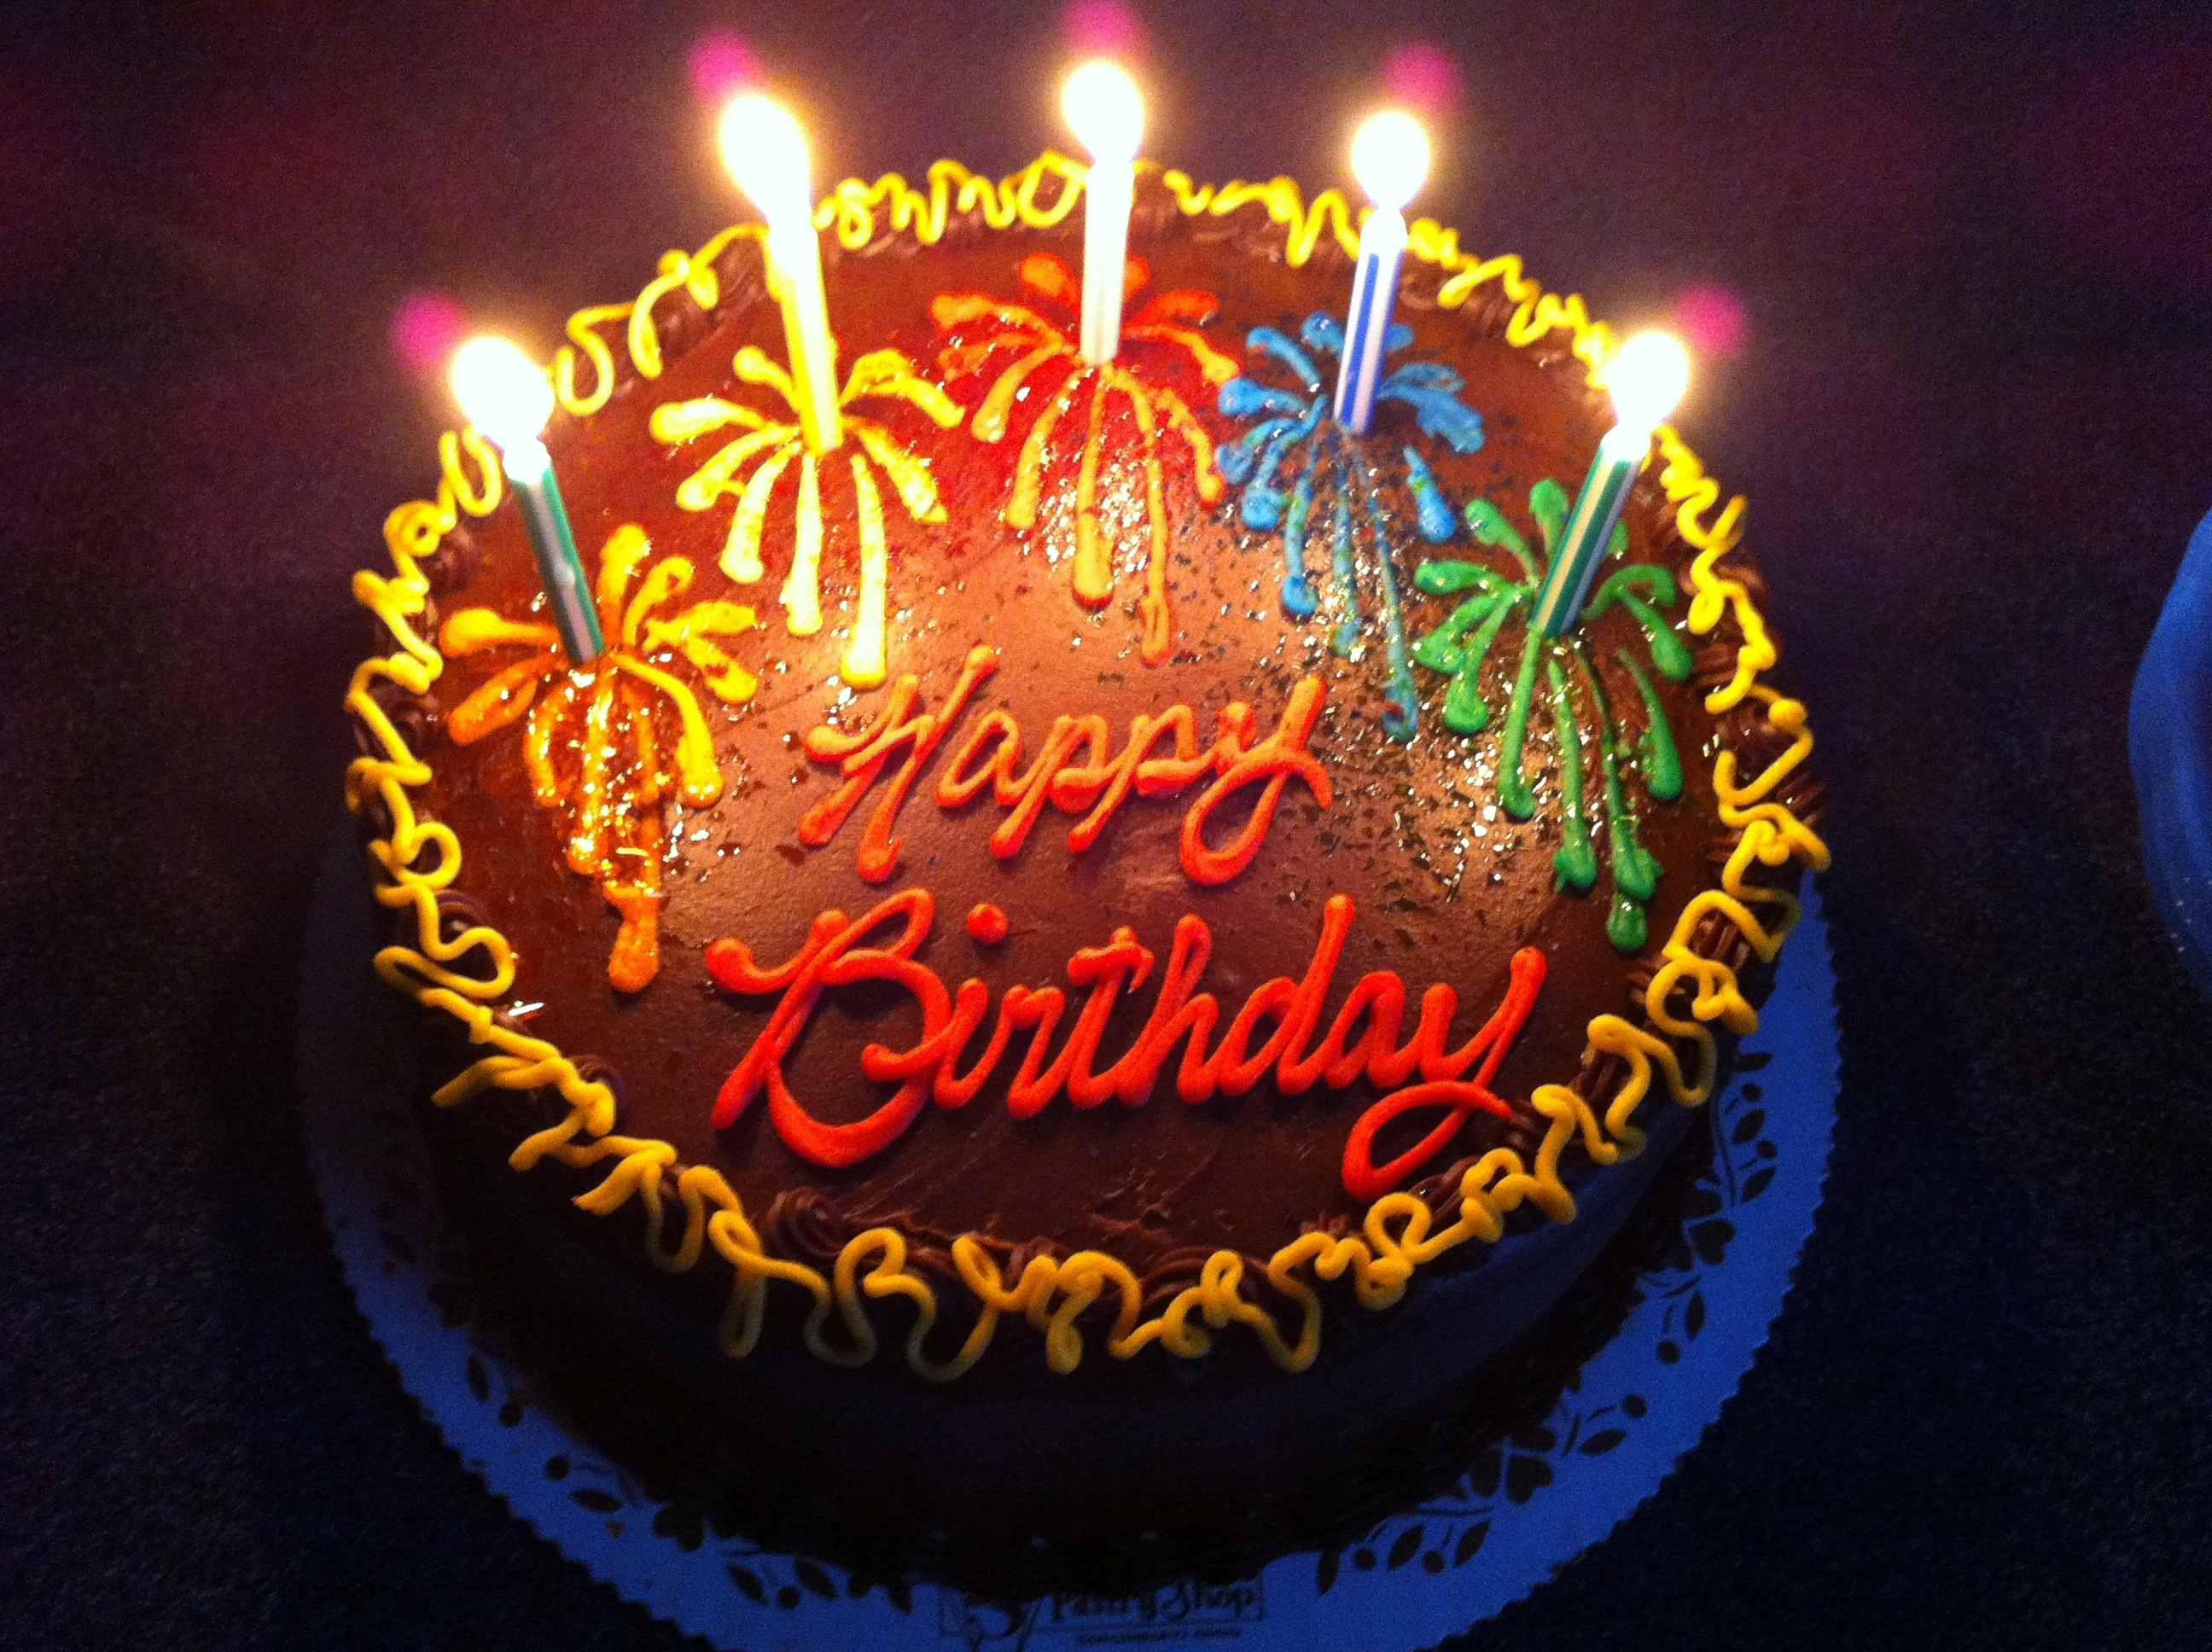 the somerville news weekly is turning 1 year old happy birthday on birthday cakes fireworks